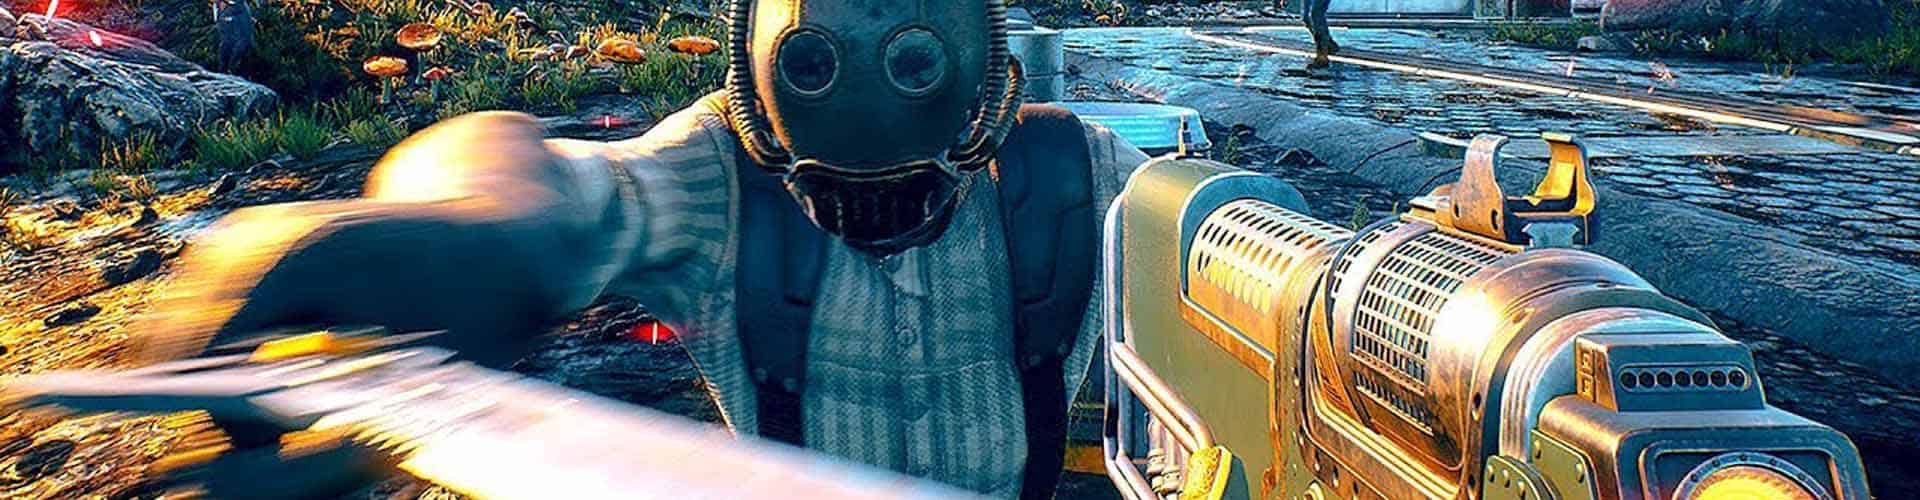 The Outer Worlds Release Date, News, Trailer And Rumors